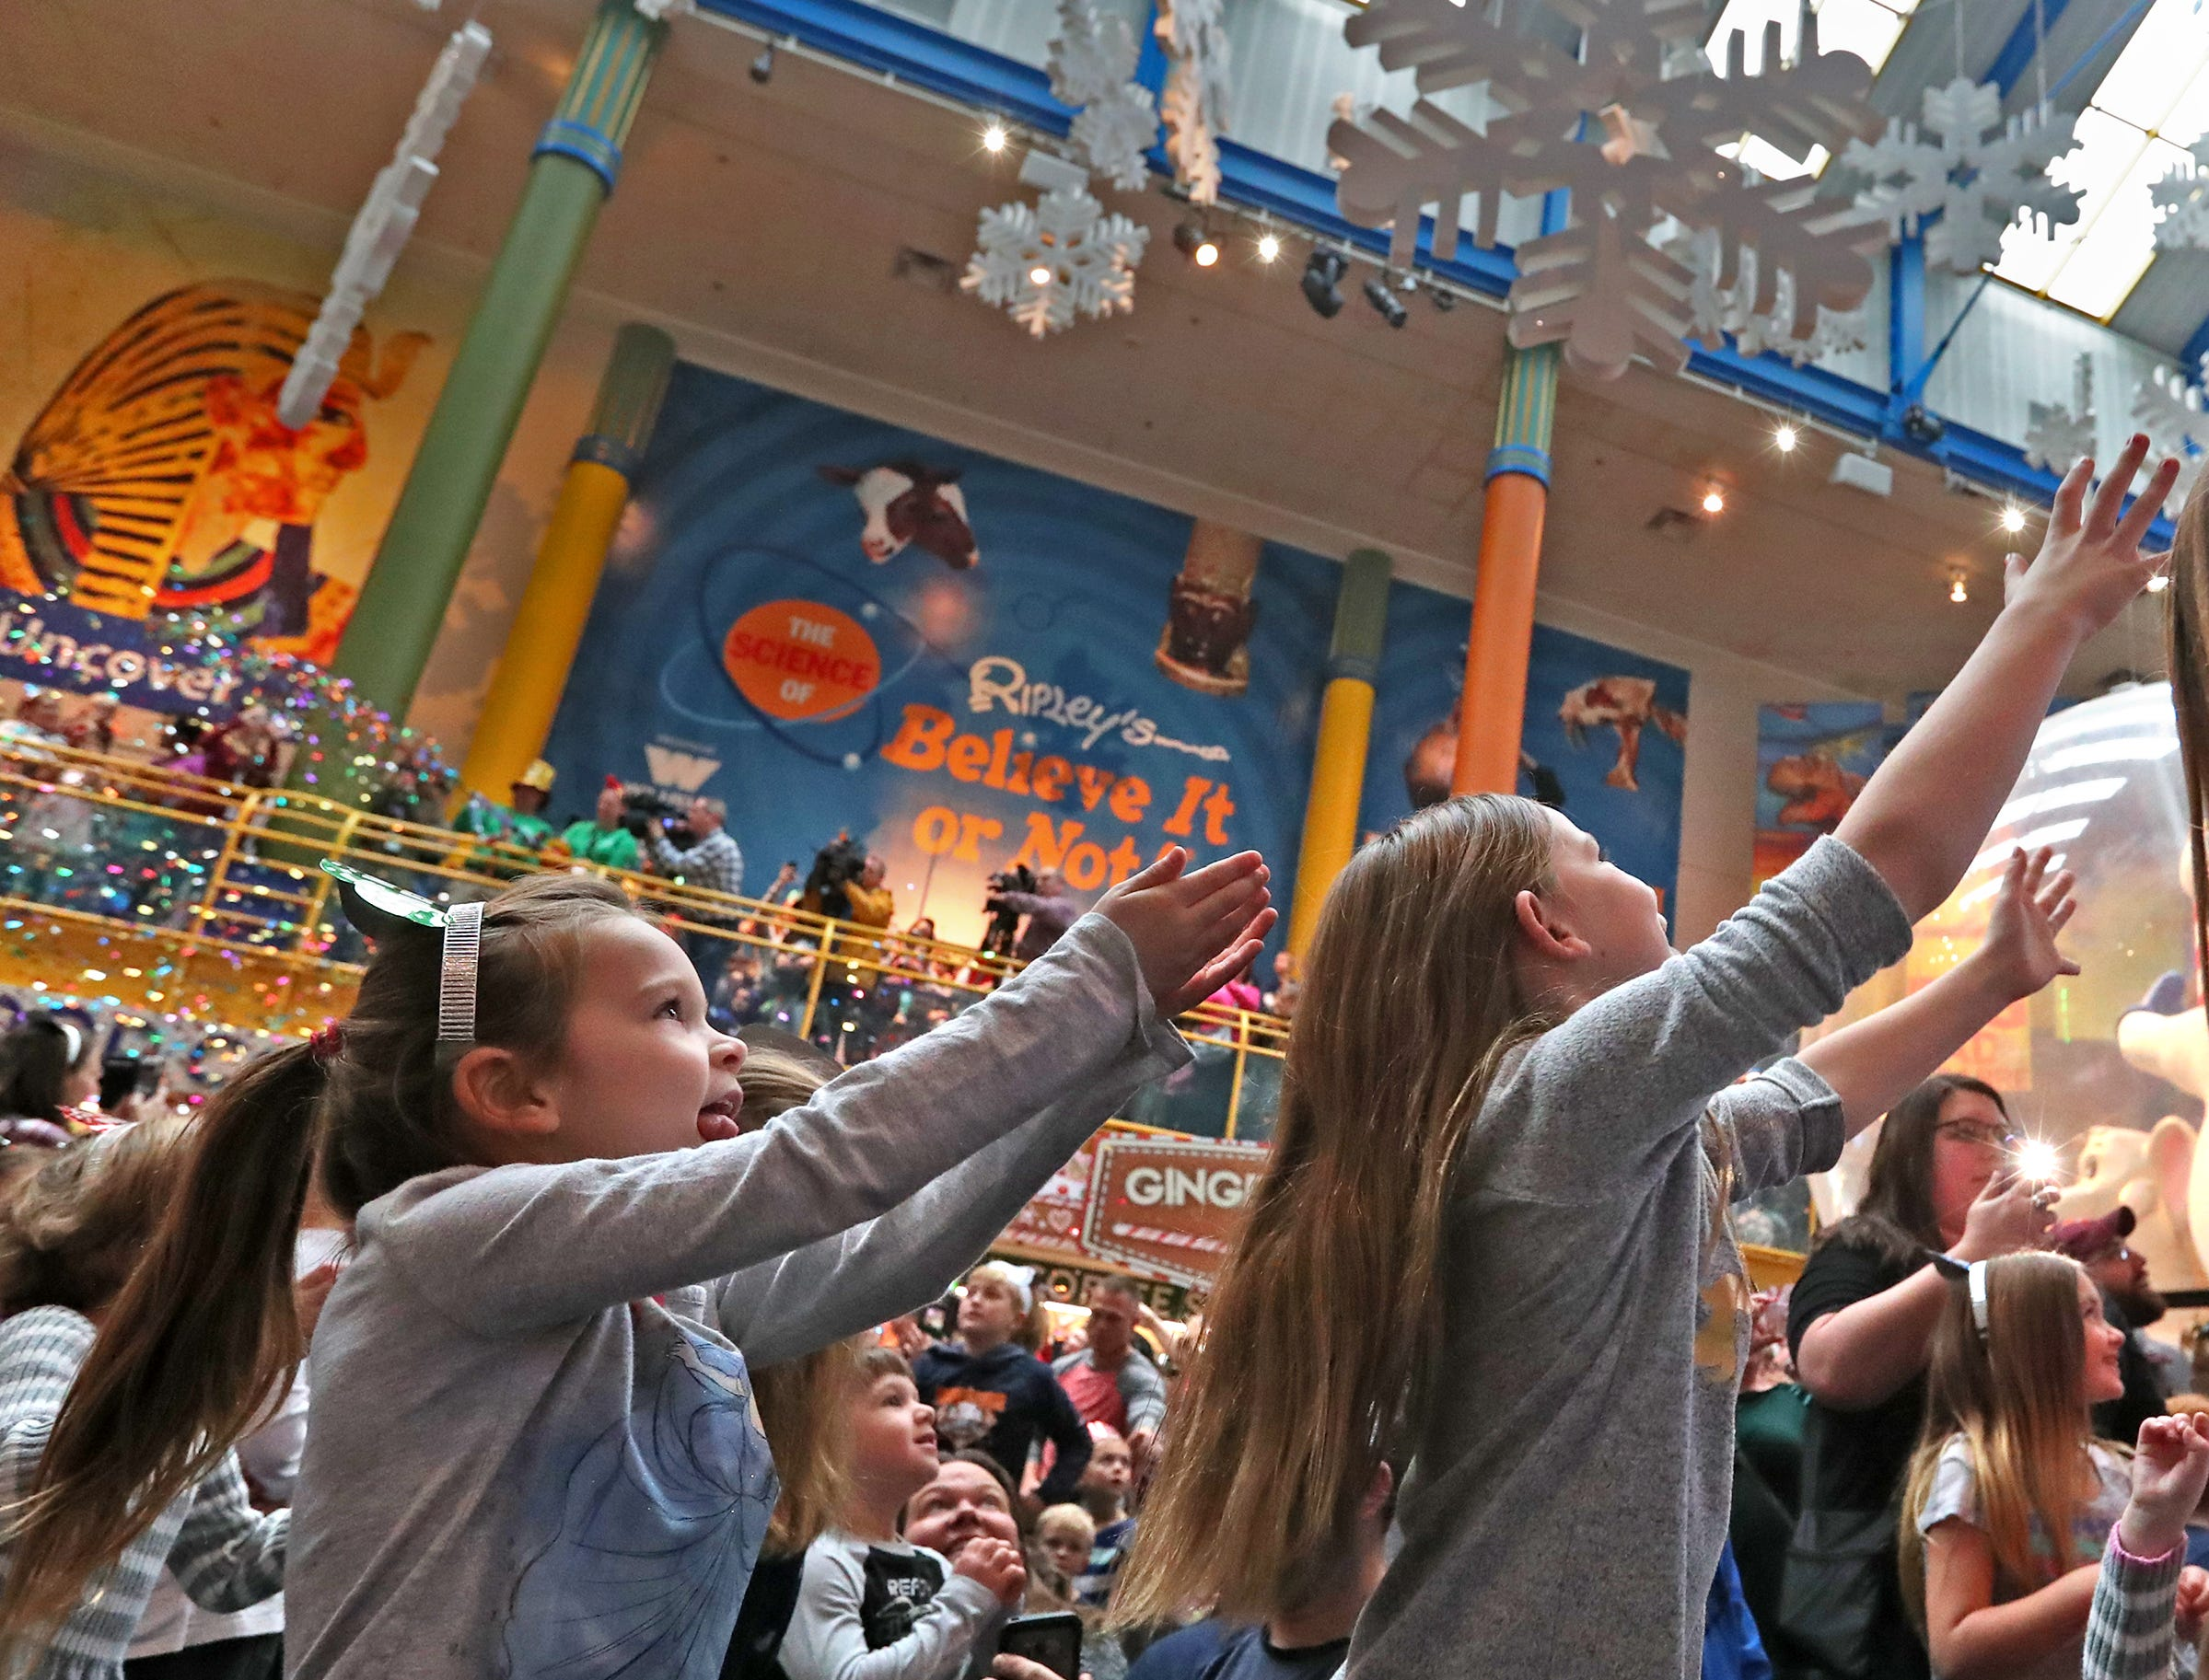 Kids reach for falling confetti at the Countdown to noon celebration at the Children's Museum of Indianapolis, Monday, Dec. 31, 2018.